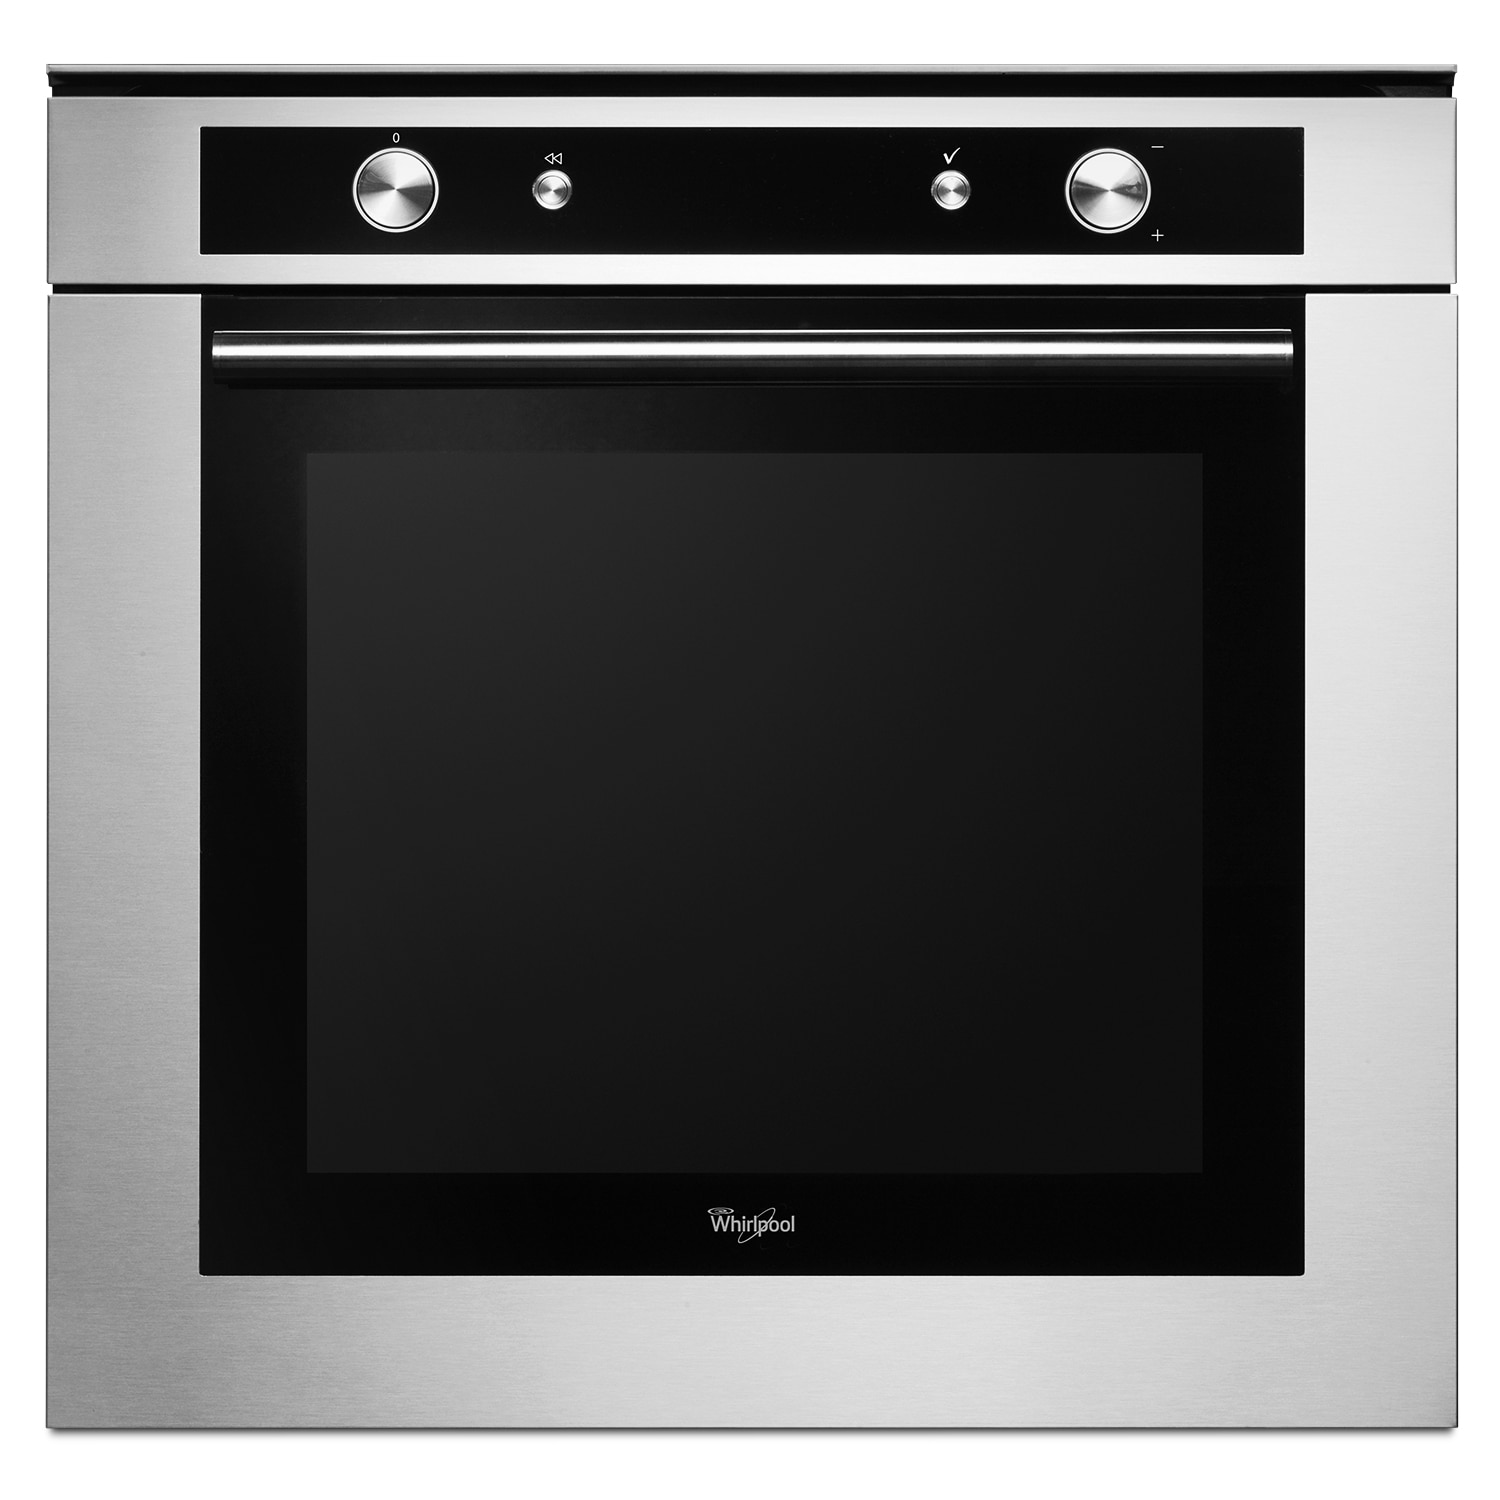 Cooking Products - Whirlpool Stainless Steel Electric Convection Wall Oven (2.6 Cu. Ft.) - WOS52EM4AS